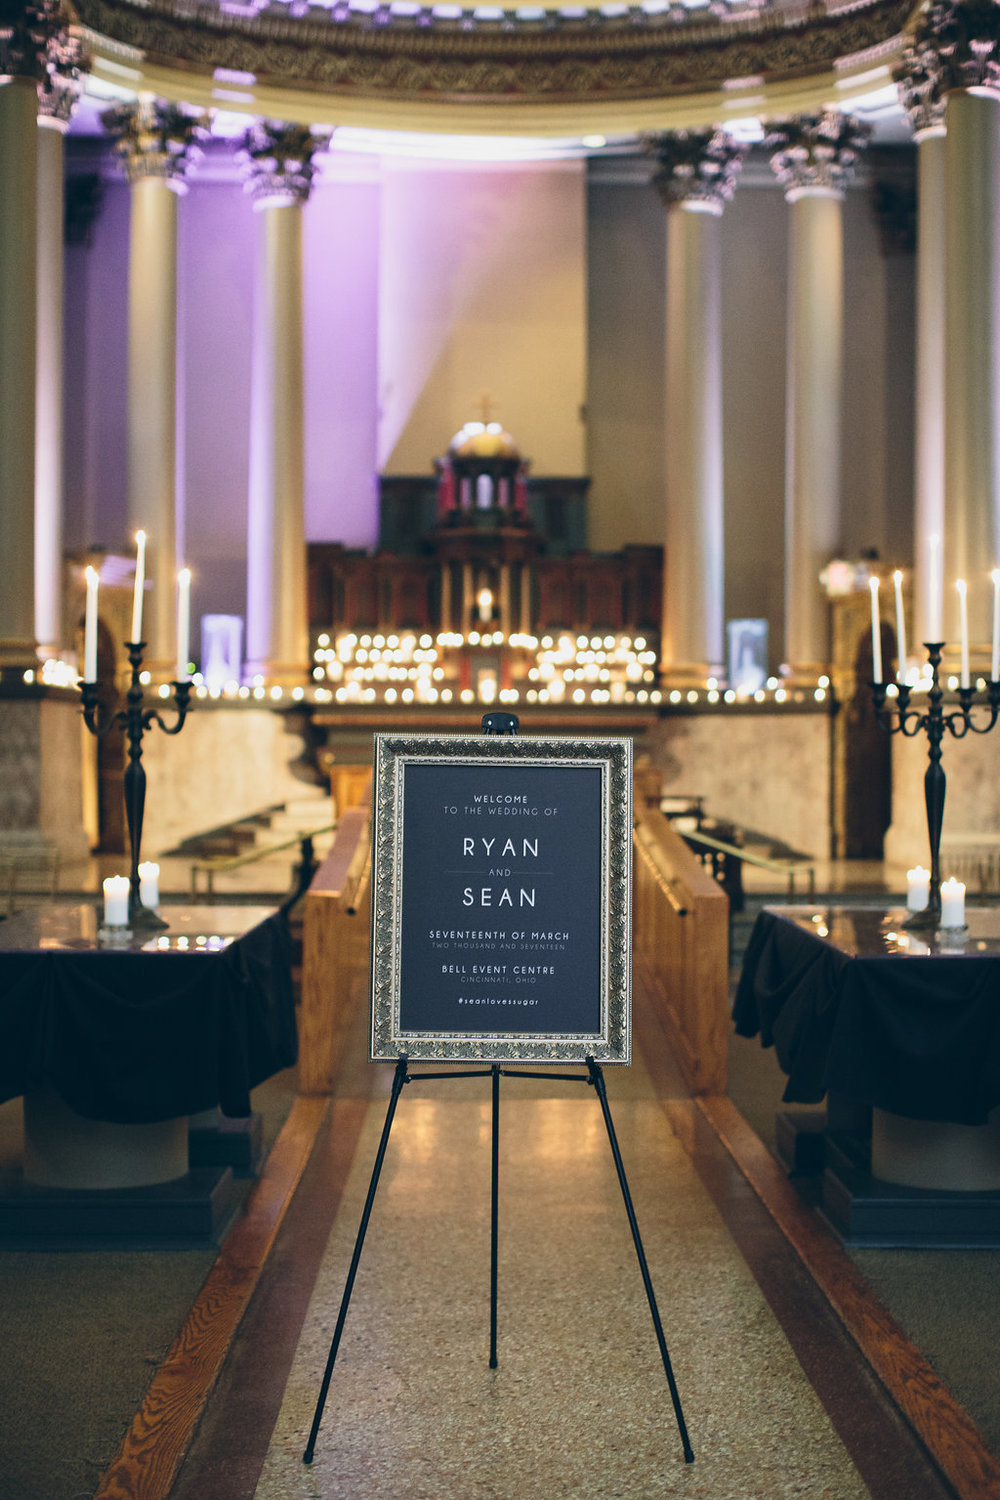 Elegant signage greets guests at a Black tie wedding in Ohio.